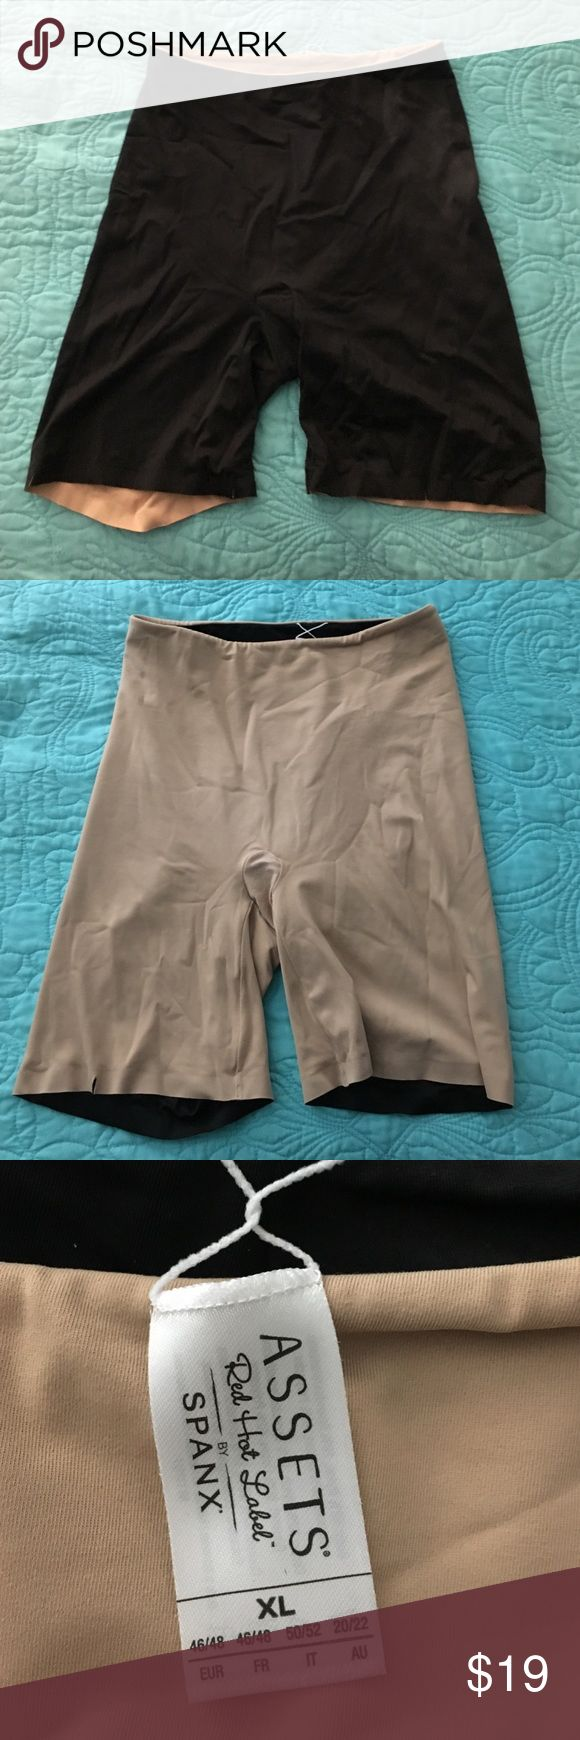 SPANX Assets reversible shapewear XL NEW listing! 💥  SPANX ASSETS Reversible shapewear. Slight cut in bottom of right leg, (pictured) smoothing fabric for sleek silhouette. Lays flat and invisible under clothes. SPANX Intimates & Sleepwear Shapewear